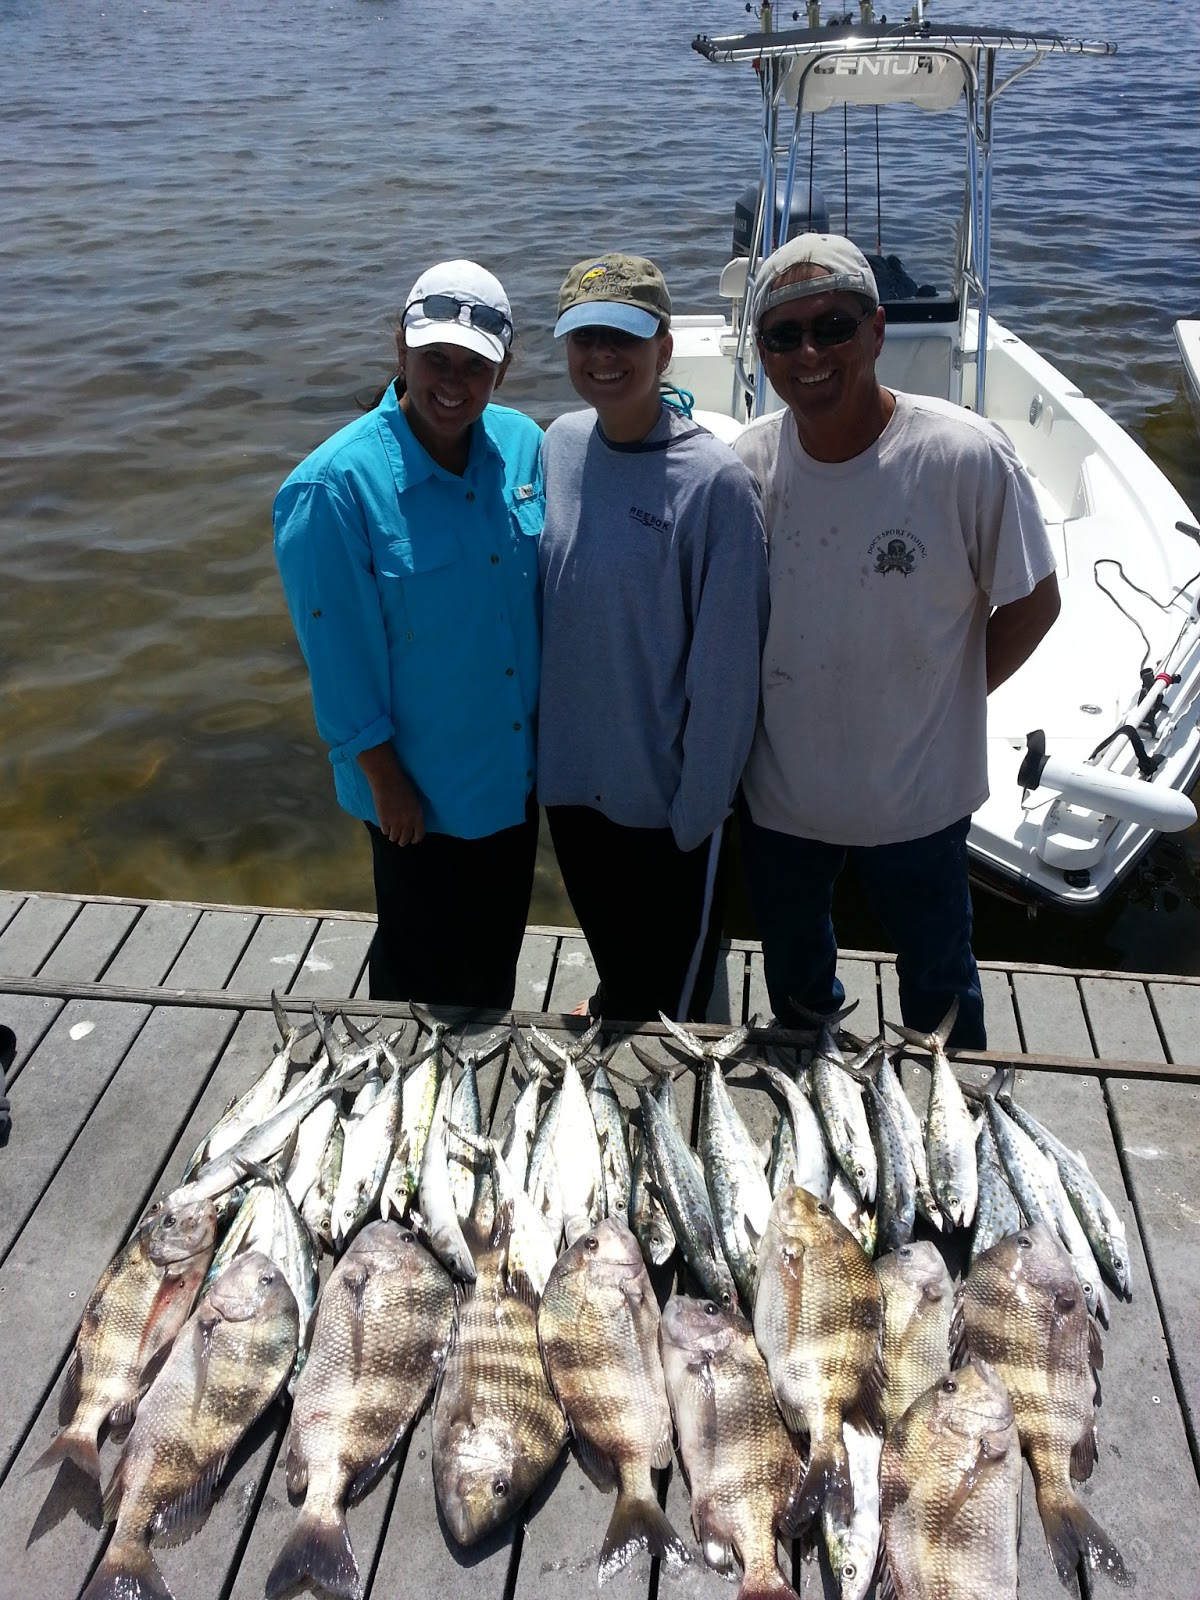 South again charters pensacola inshore guide 6 april for Fishing charters pensacola